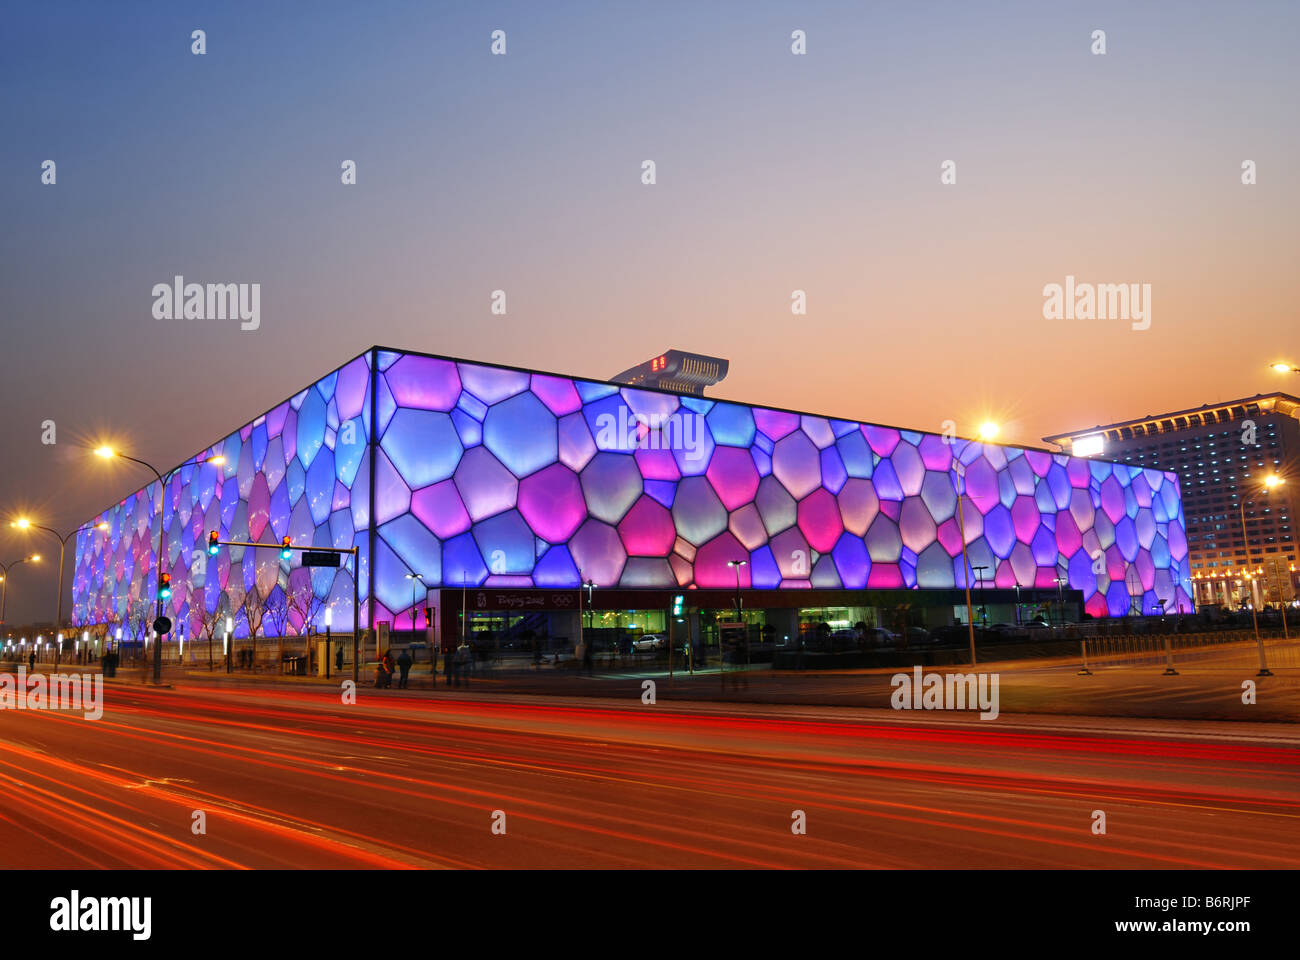 Beijing's swimming Olympic Stadium ('watercube') illuminated at dusk. - Stock Image